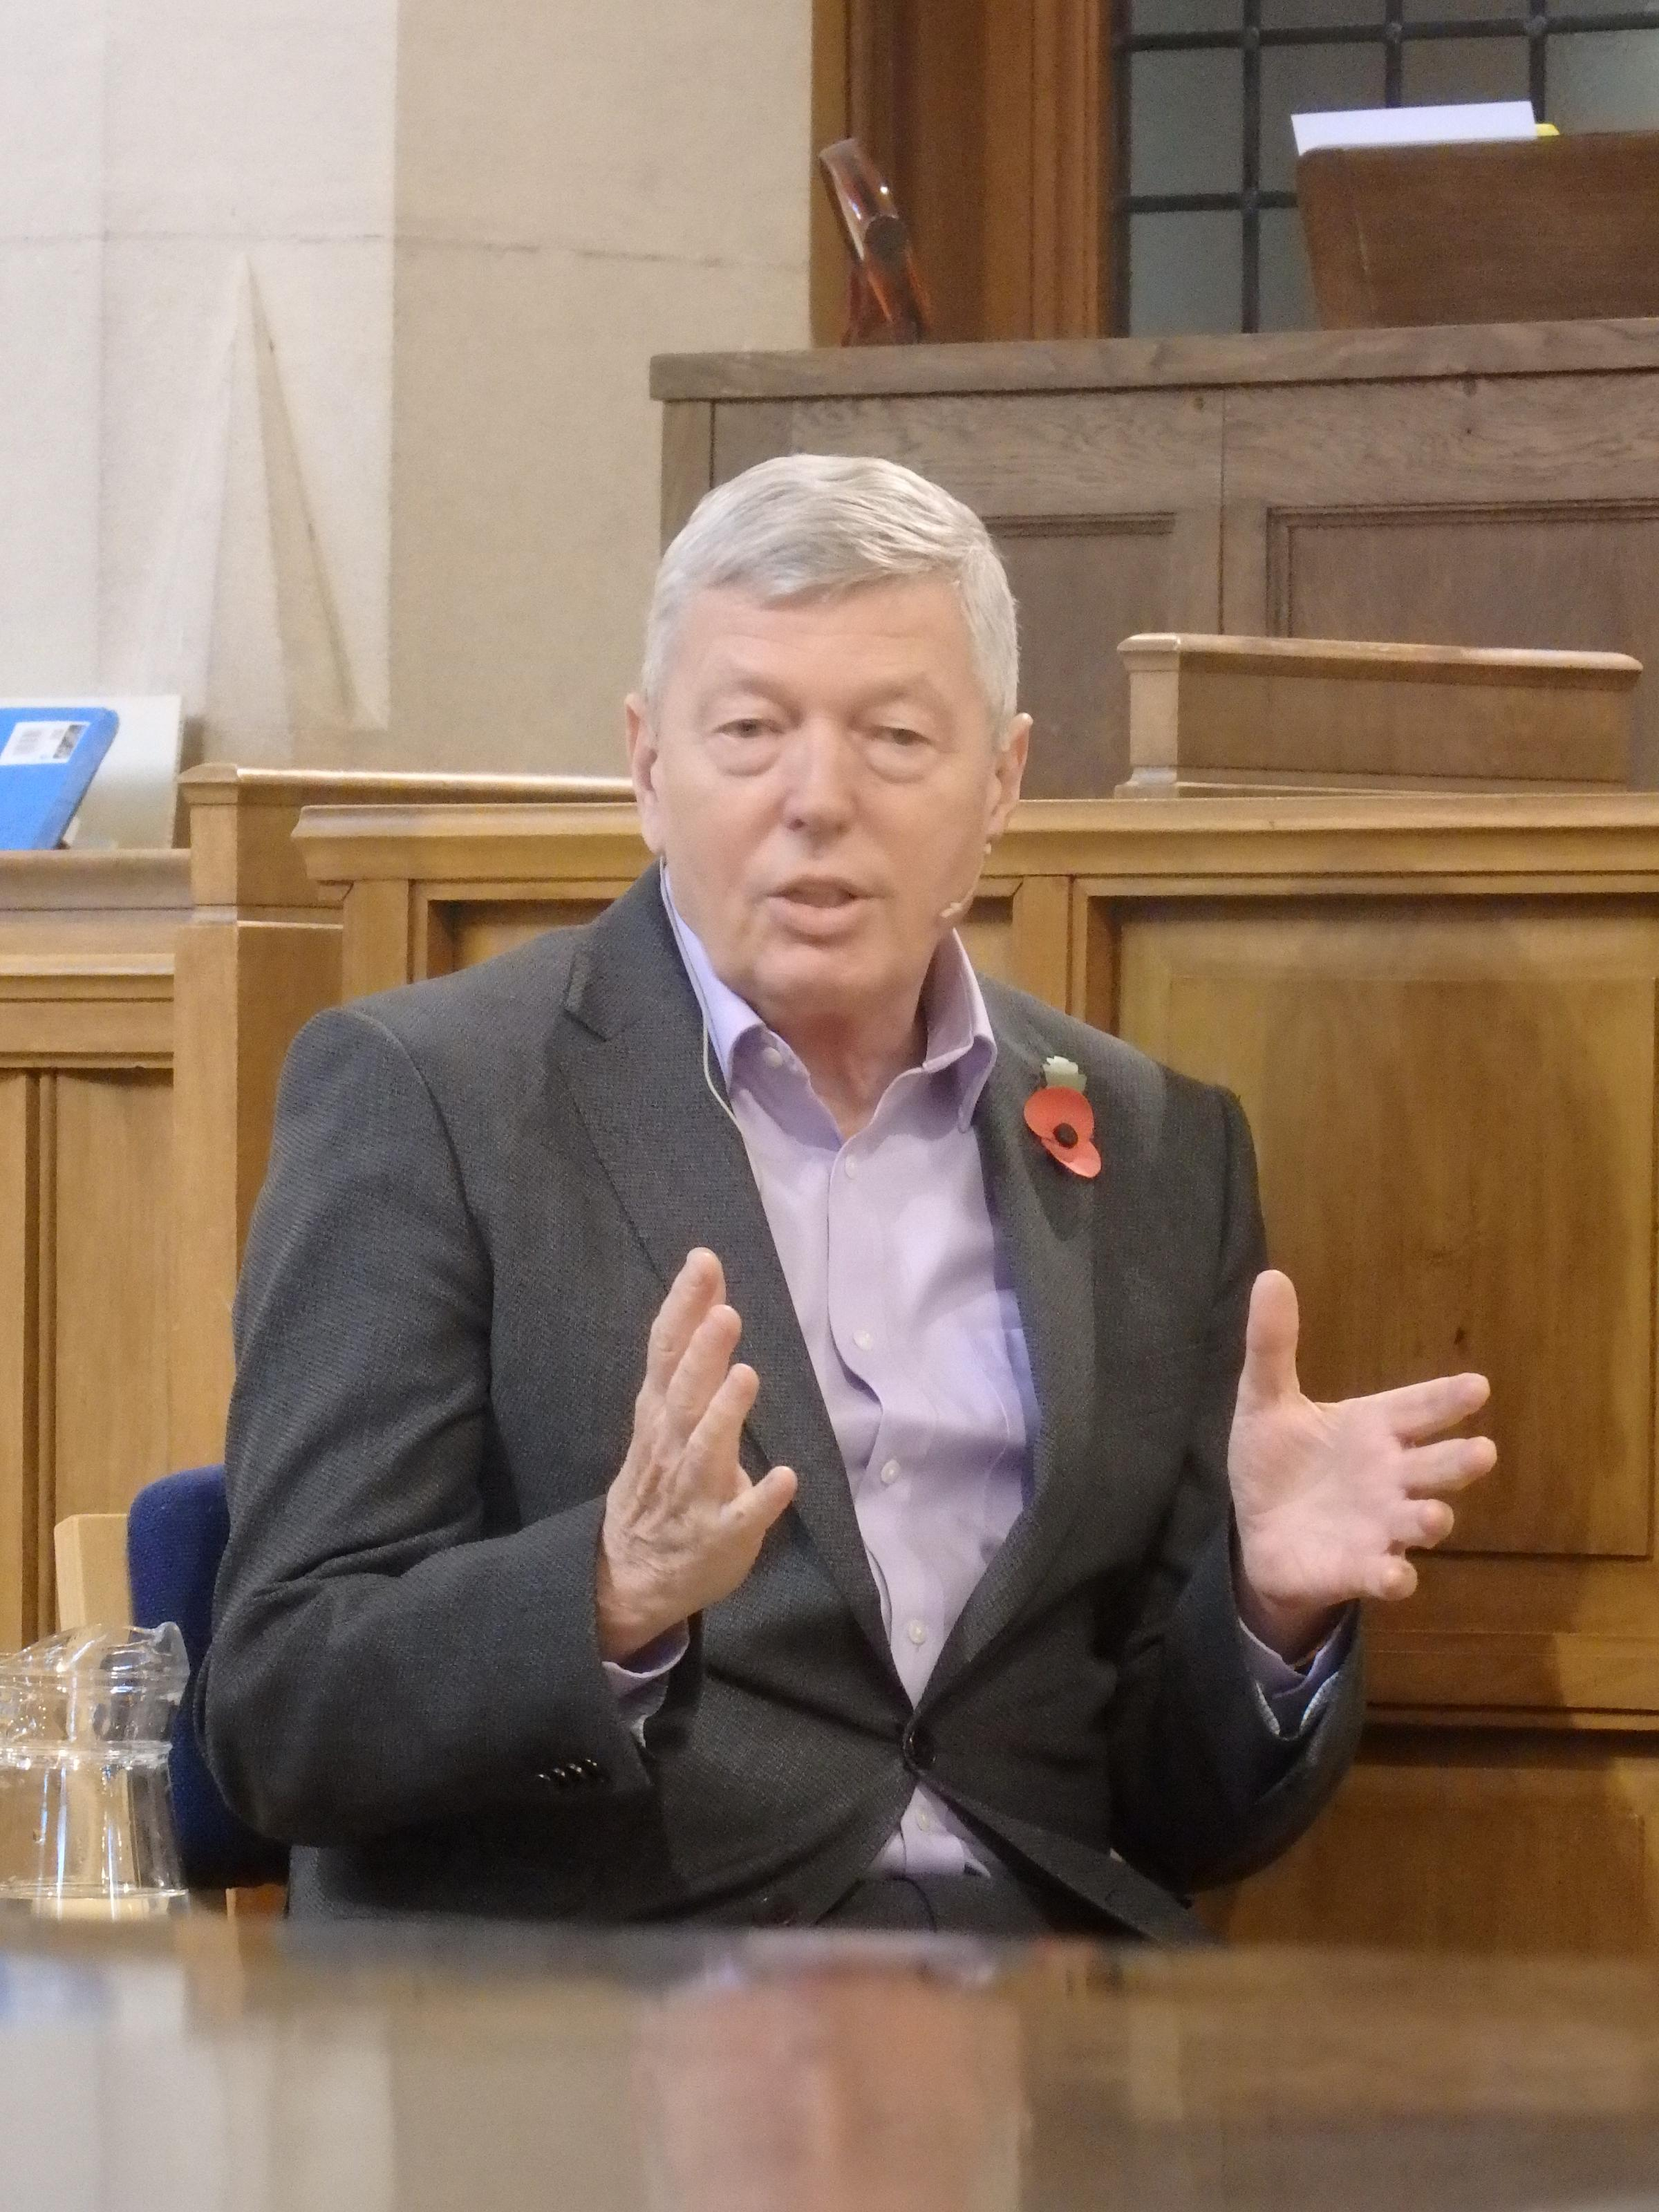 THE BIG INTERVIEW: Alan Johnson speaks to the County Gazette ahead of appearing at the Taunton Literary Festival